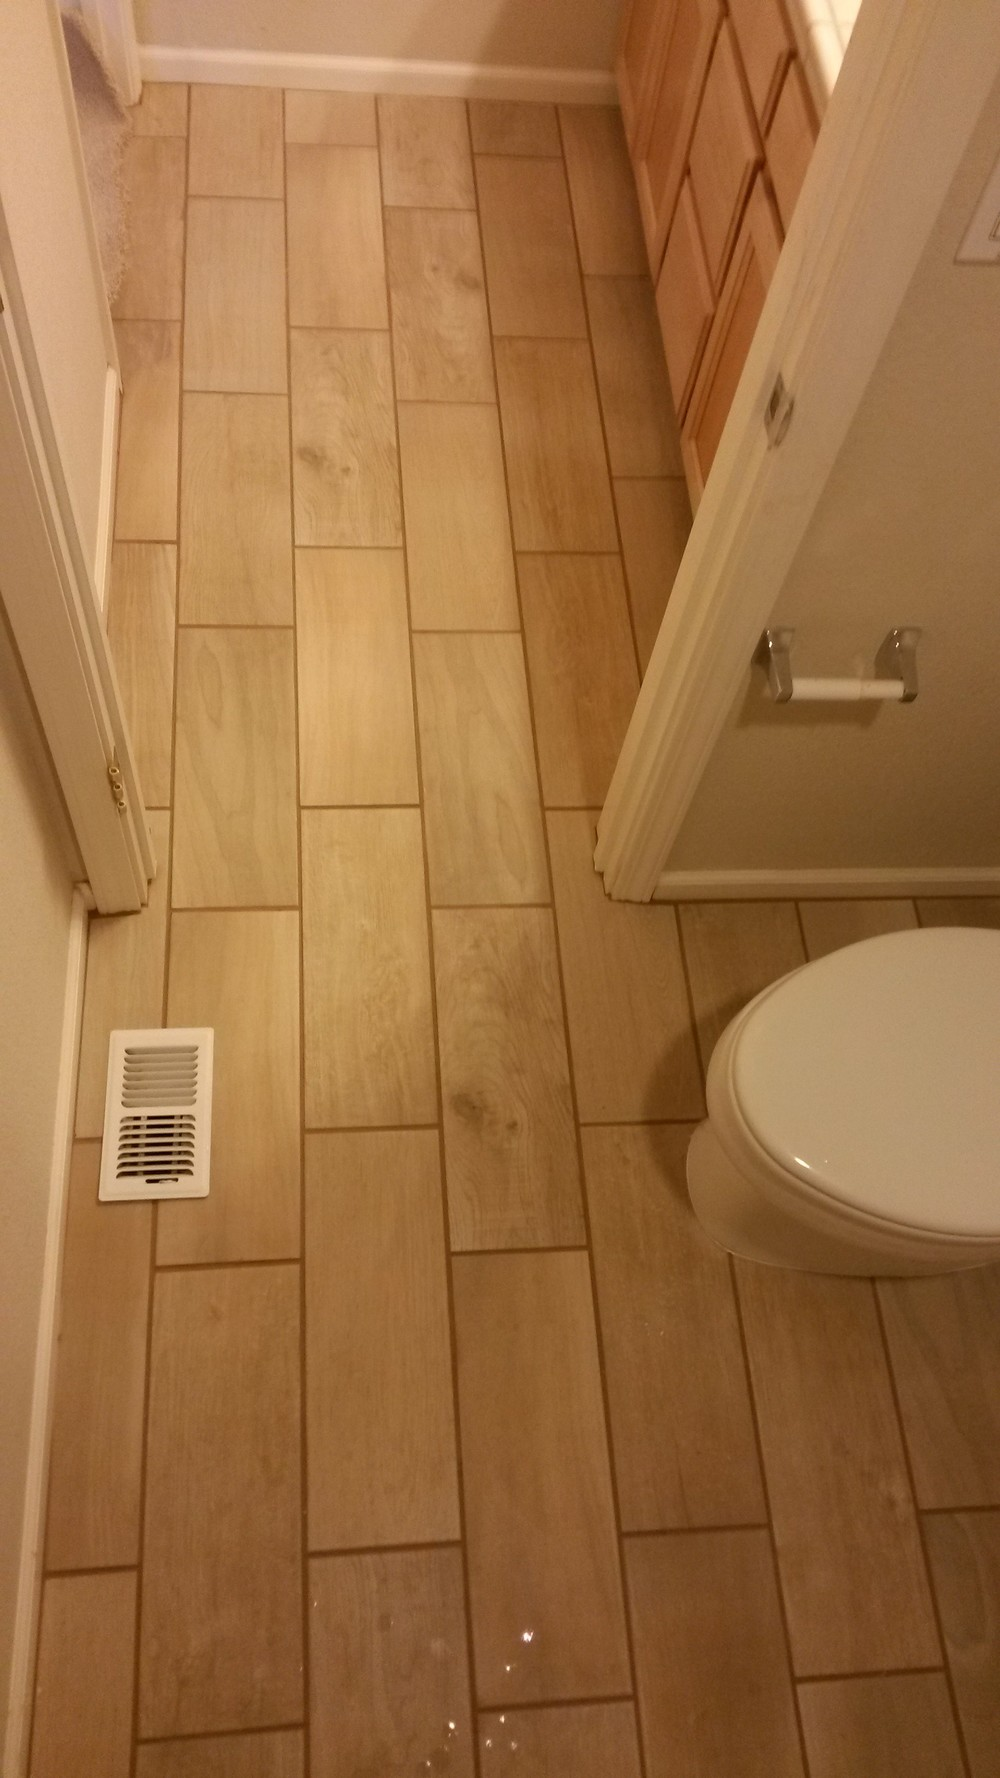 Top view Of Entire Upstairs Bath Floor.jpg